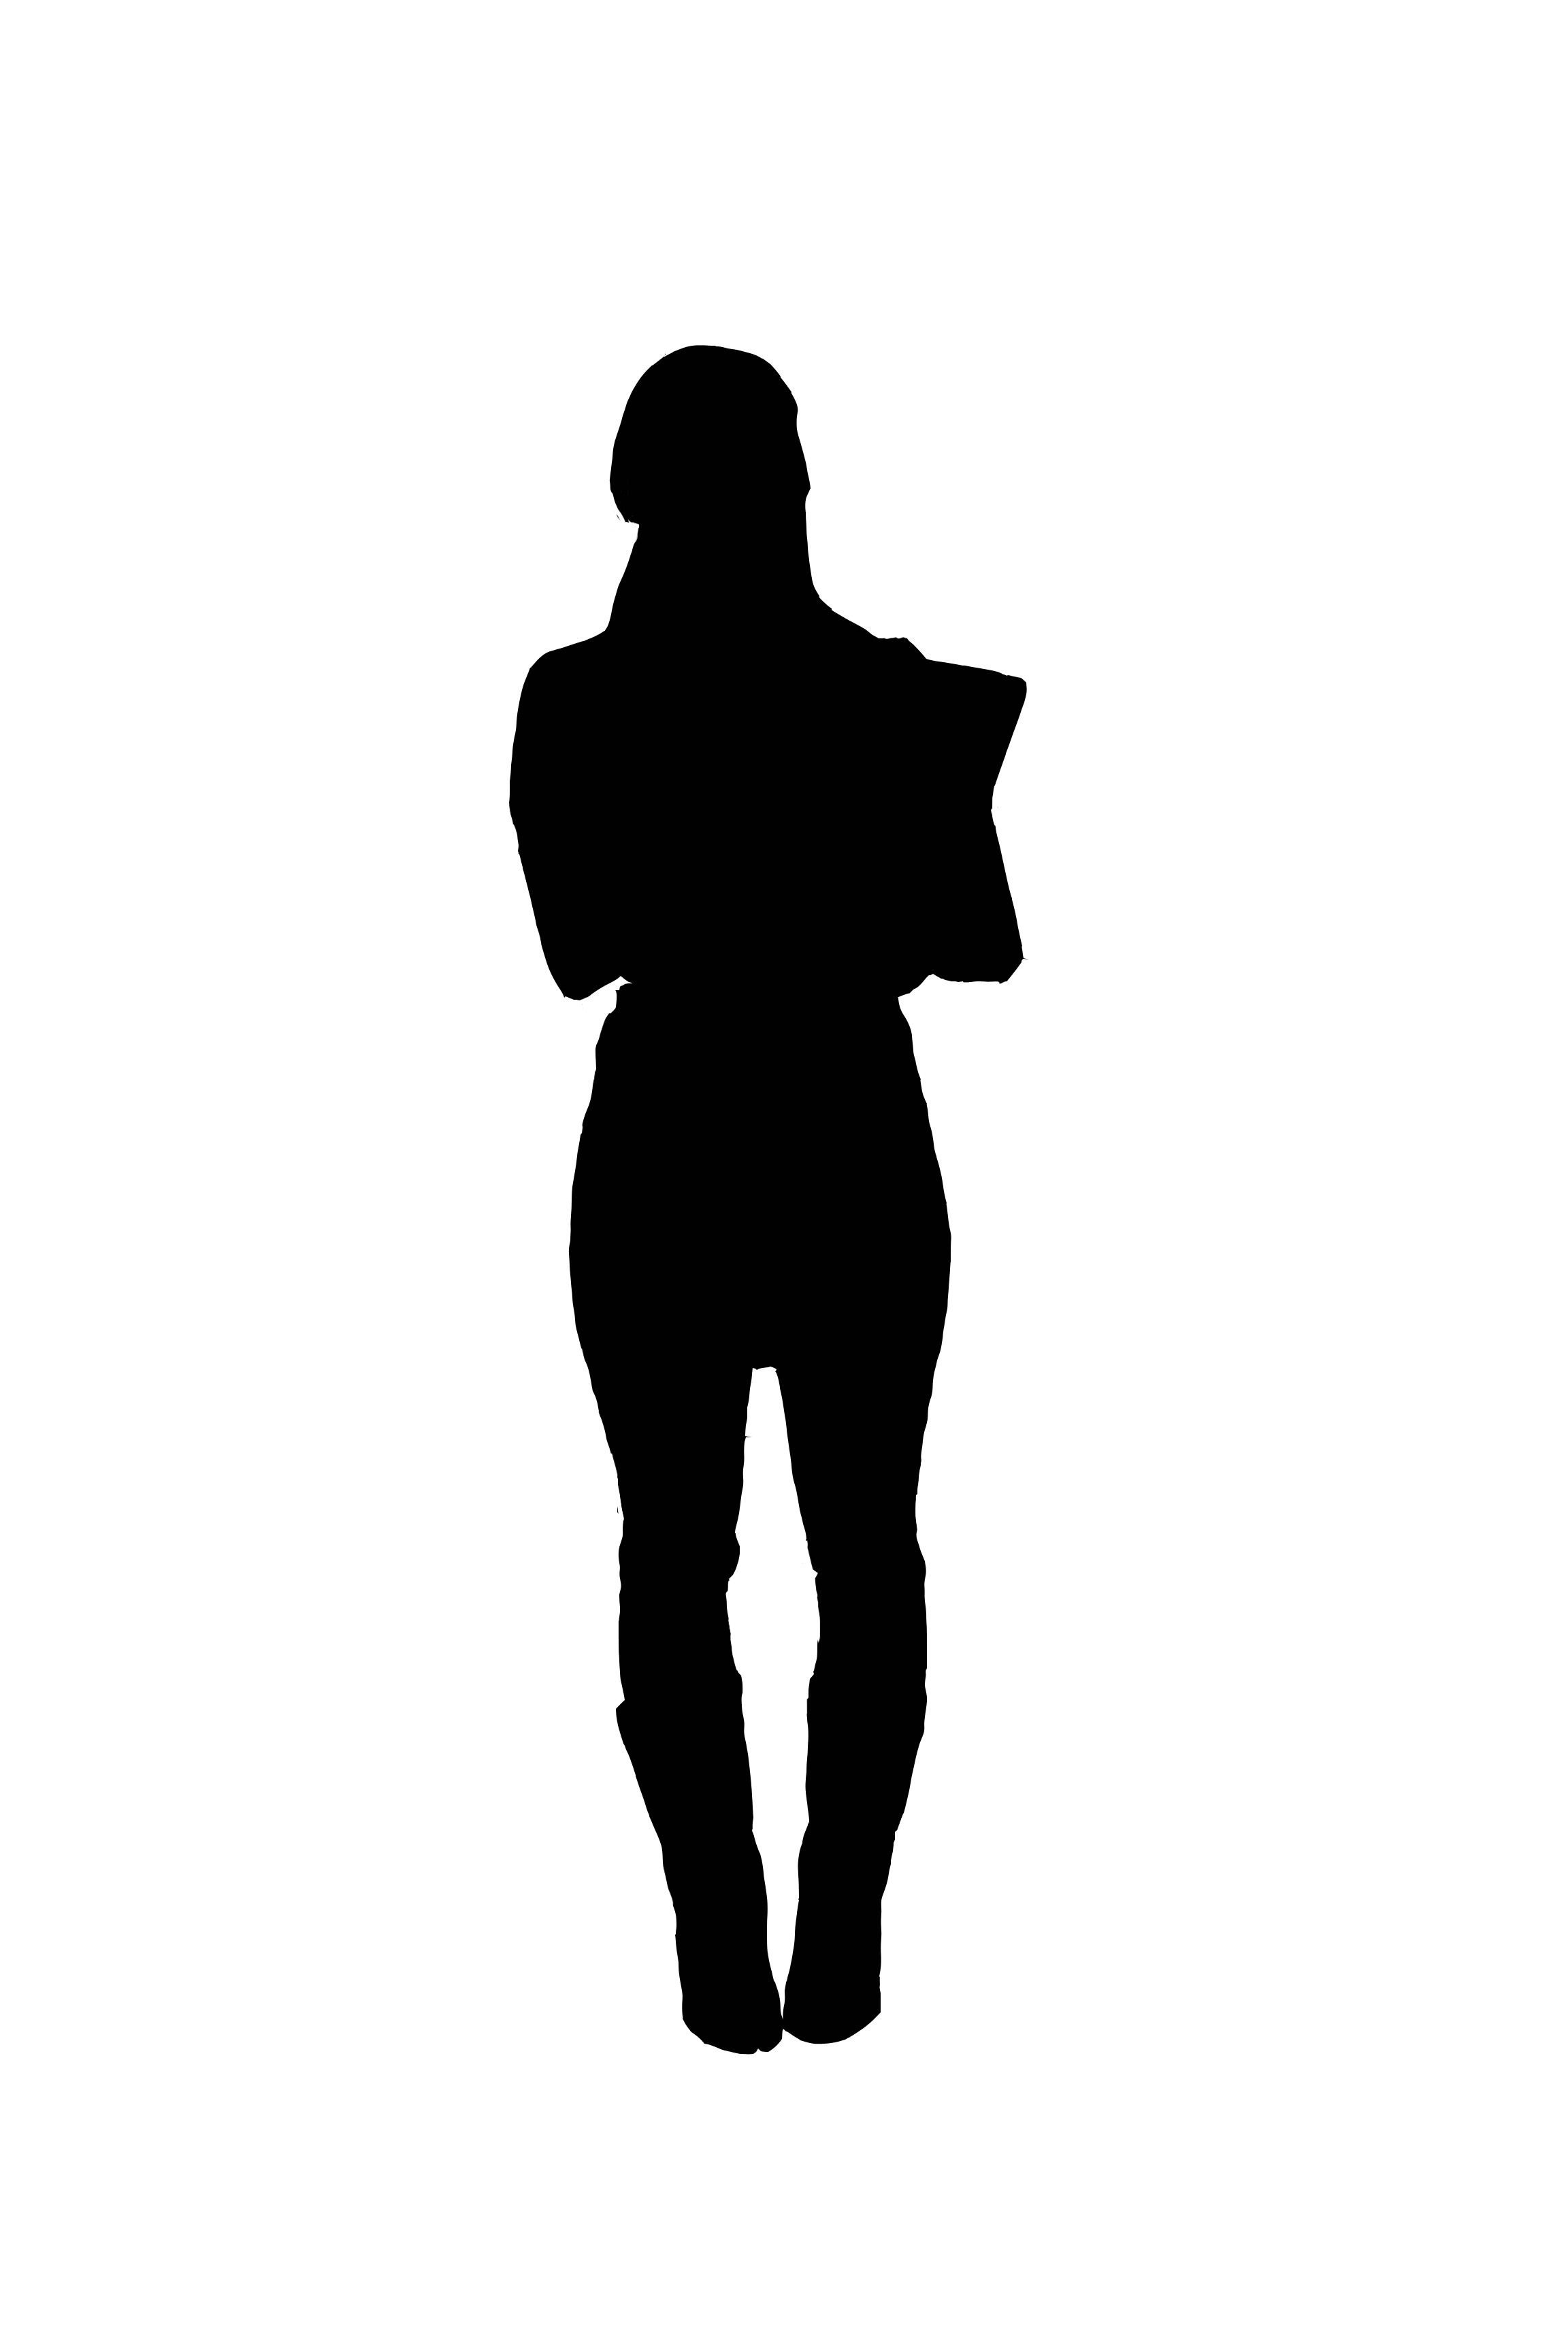 Teacher silhouette png. At getdrawings com free